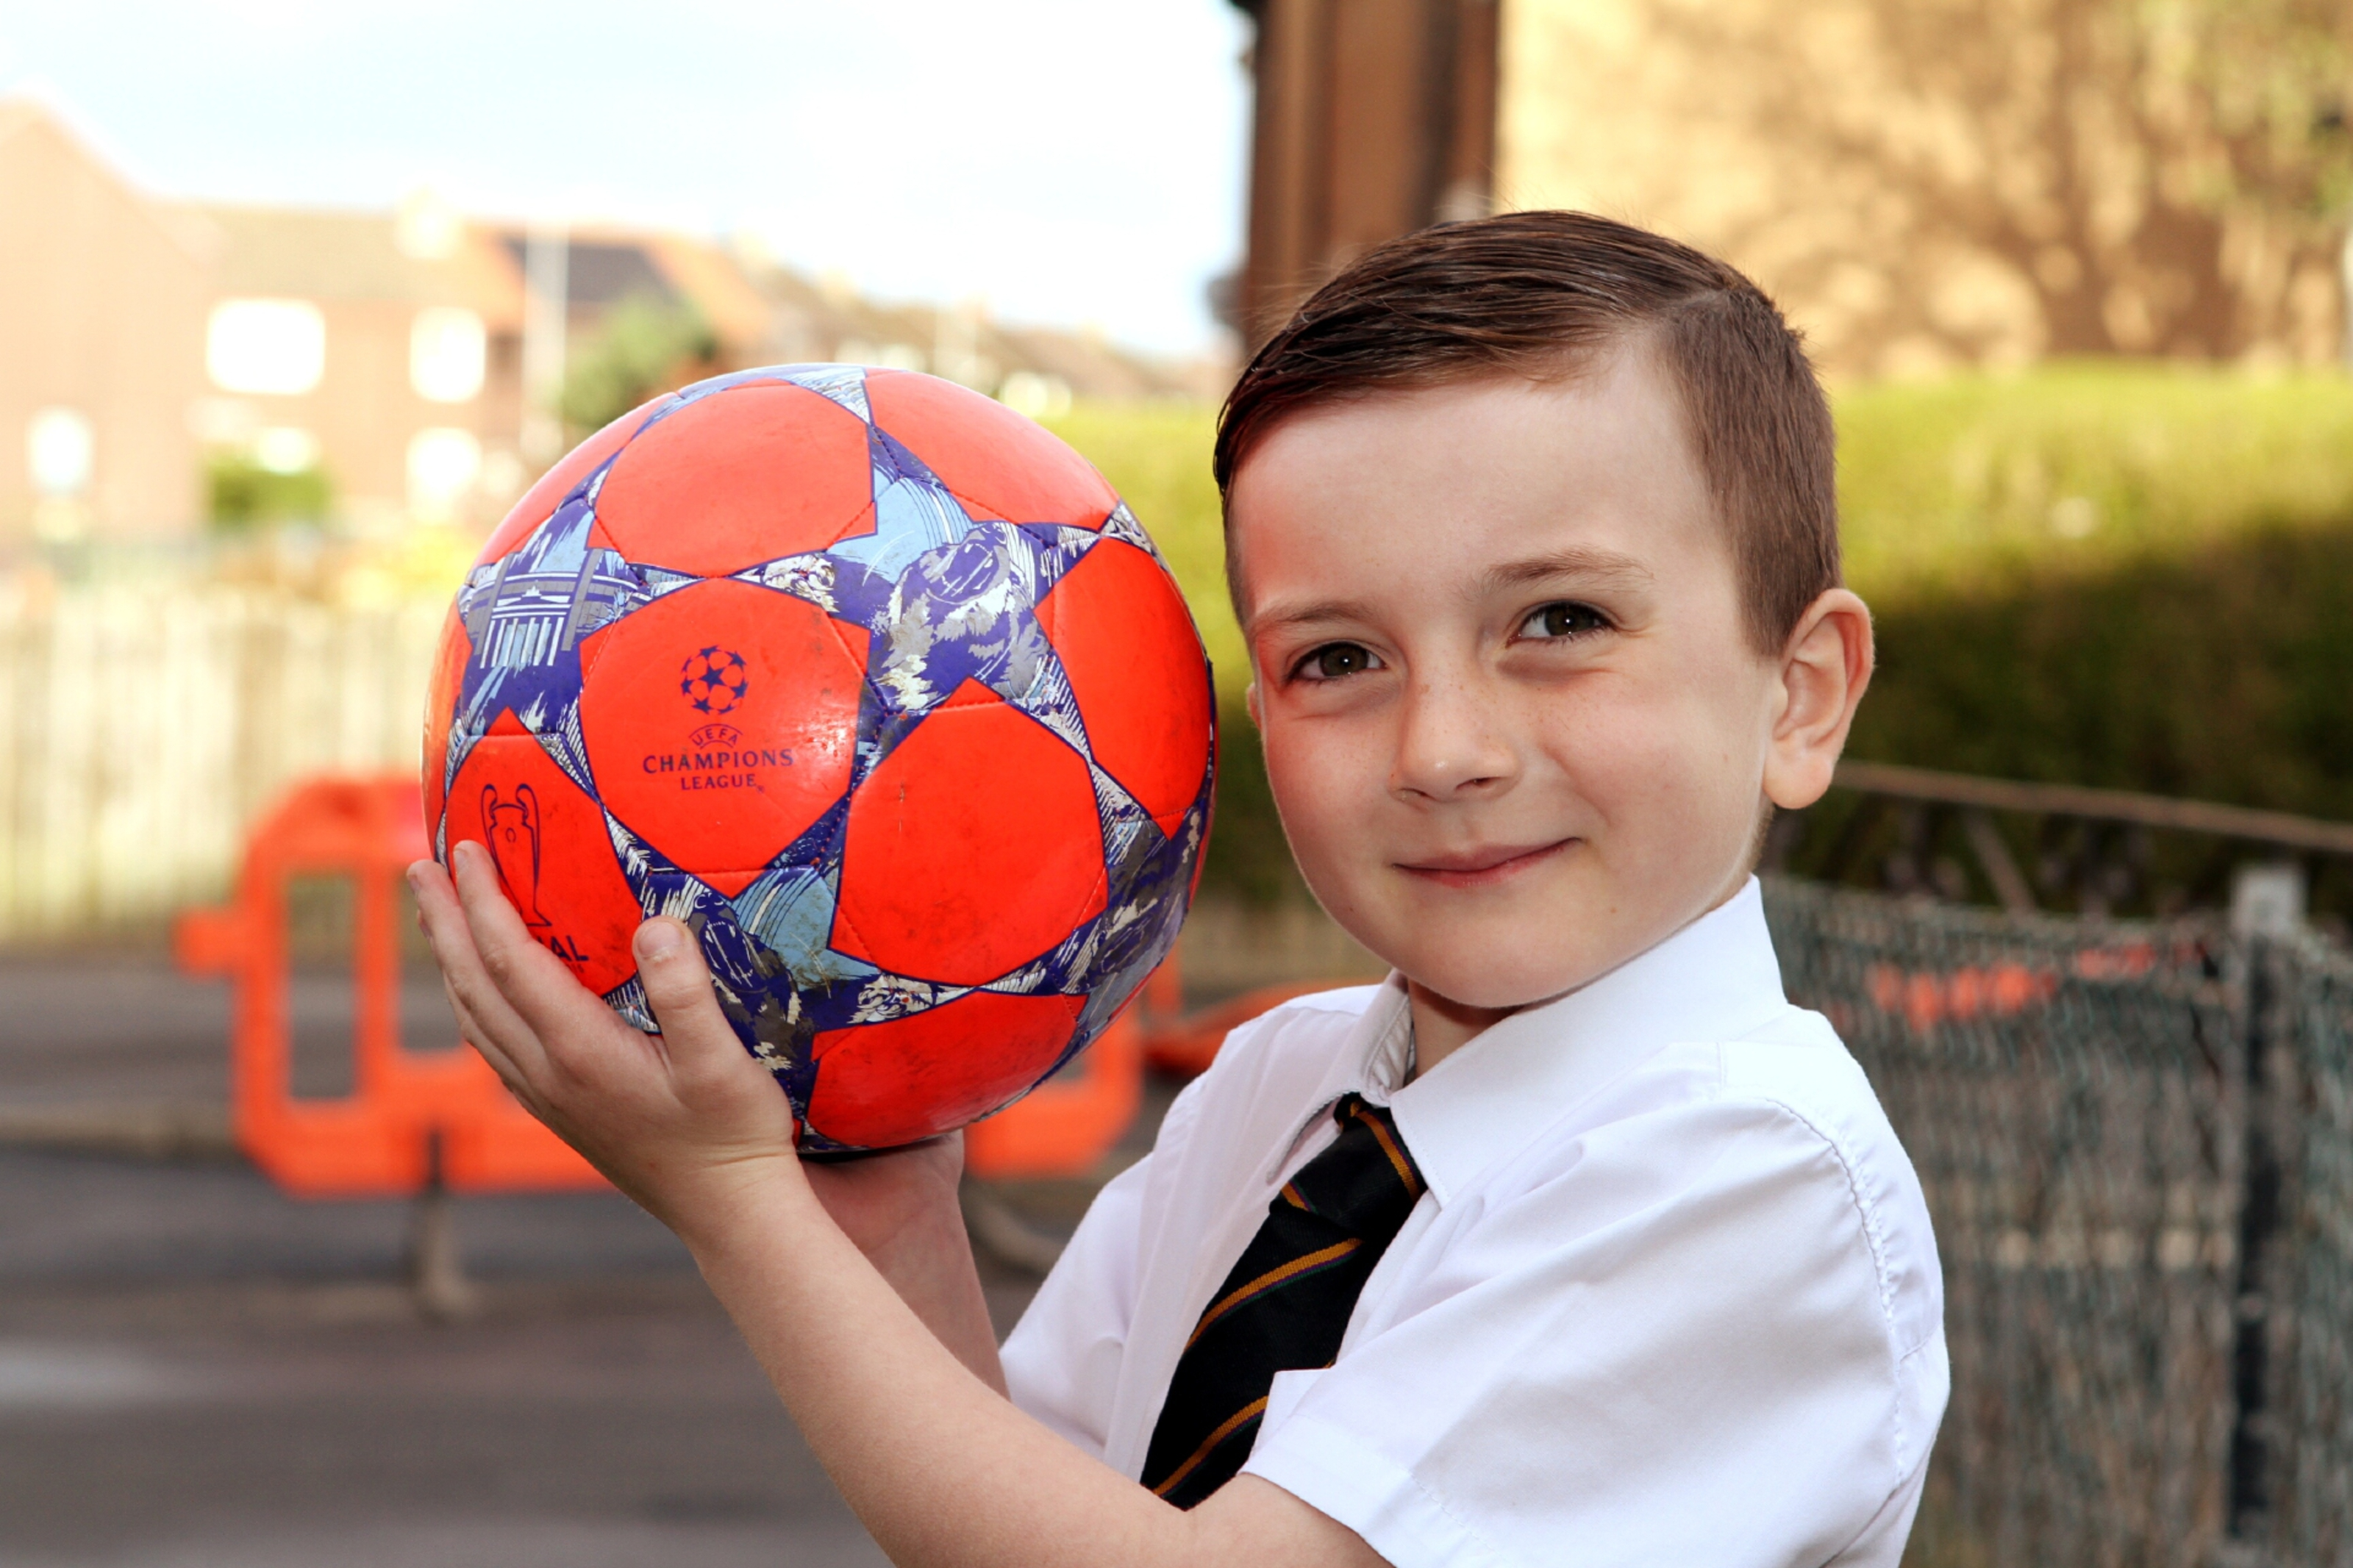 Bailey will be the mascot at this week's Champions League match between Manchester City and Real Madrid.